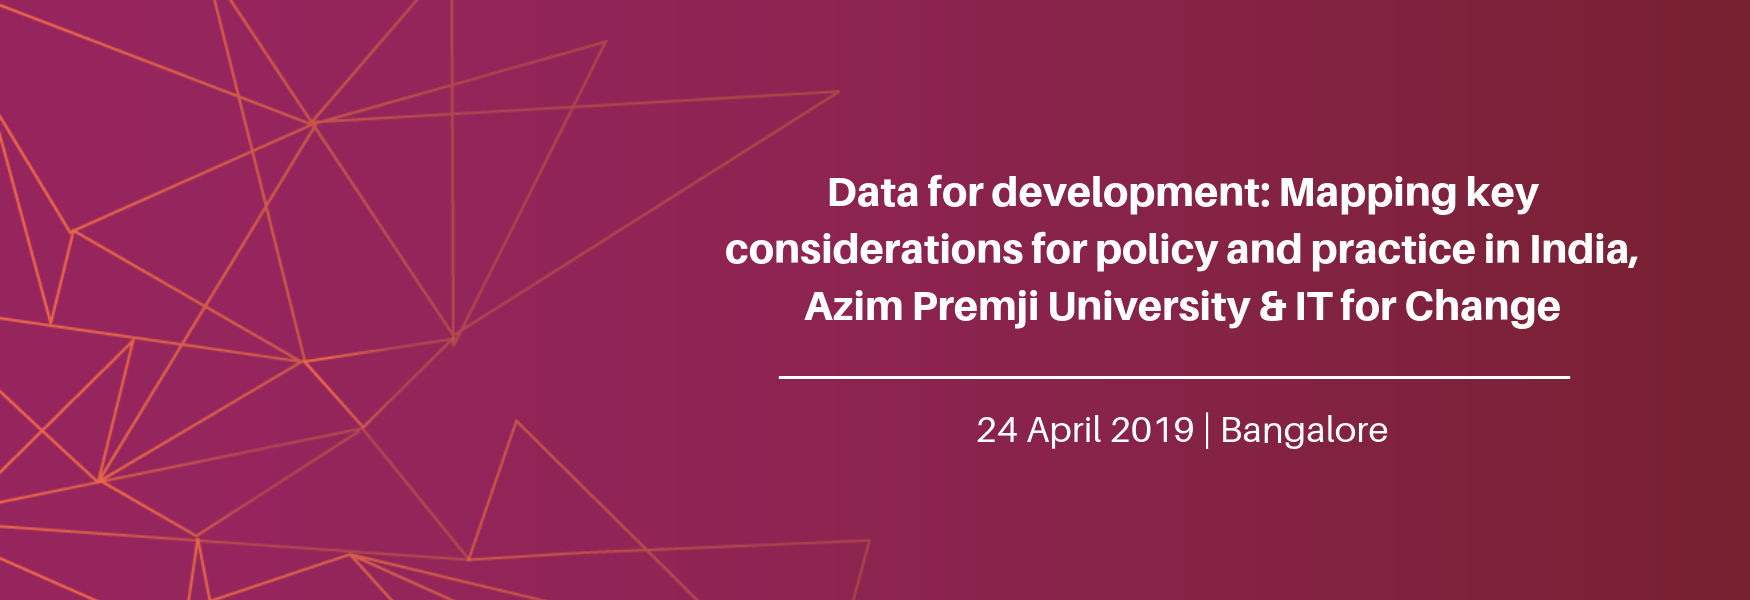 Data for development banner